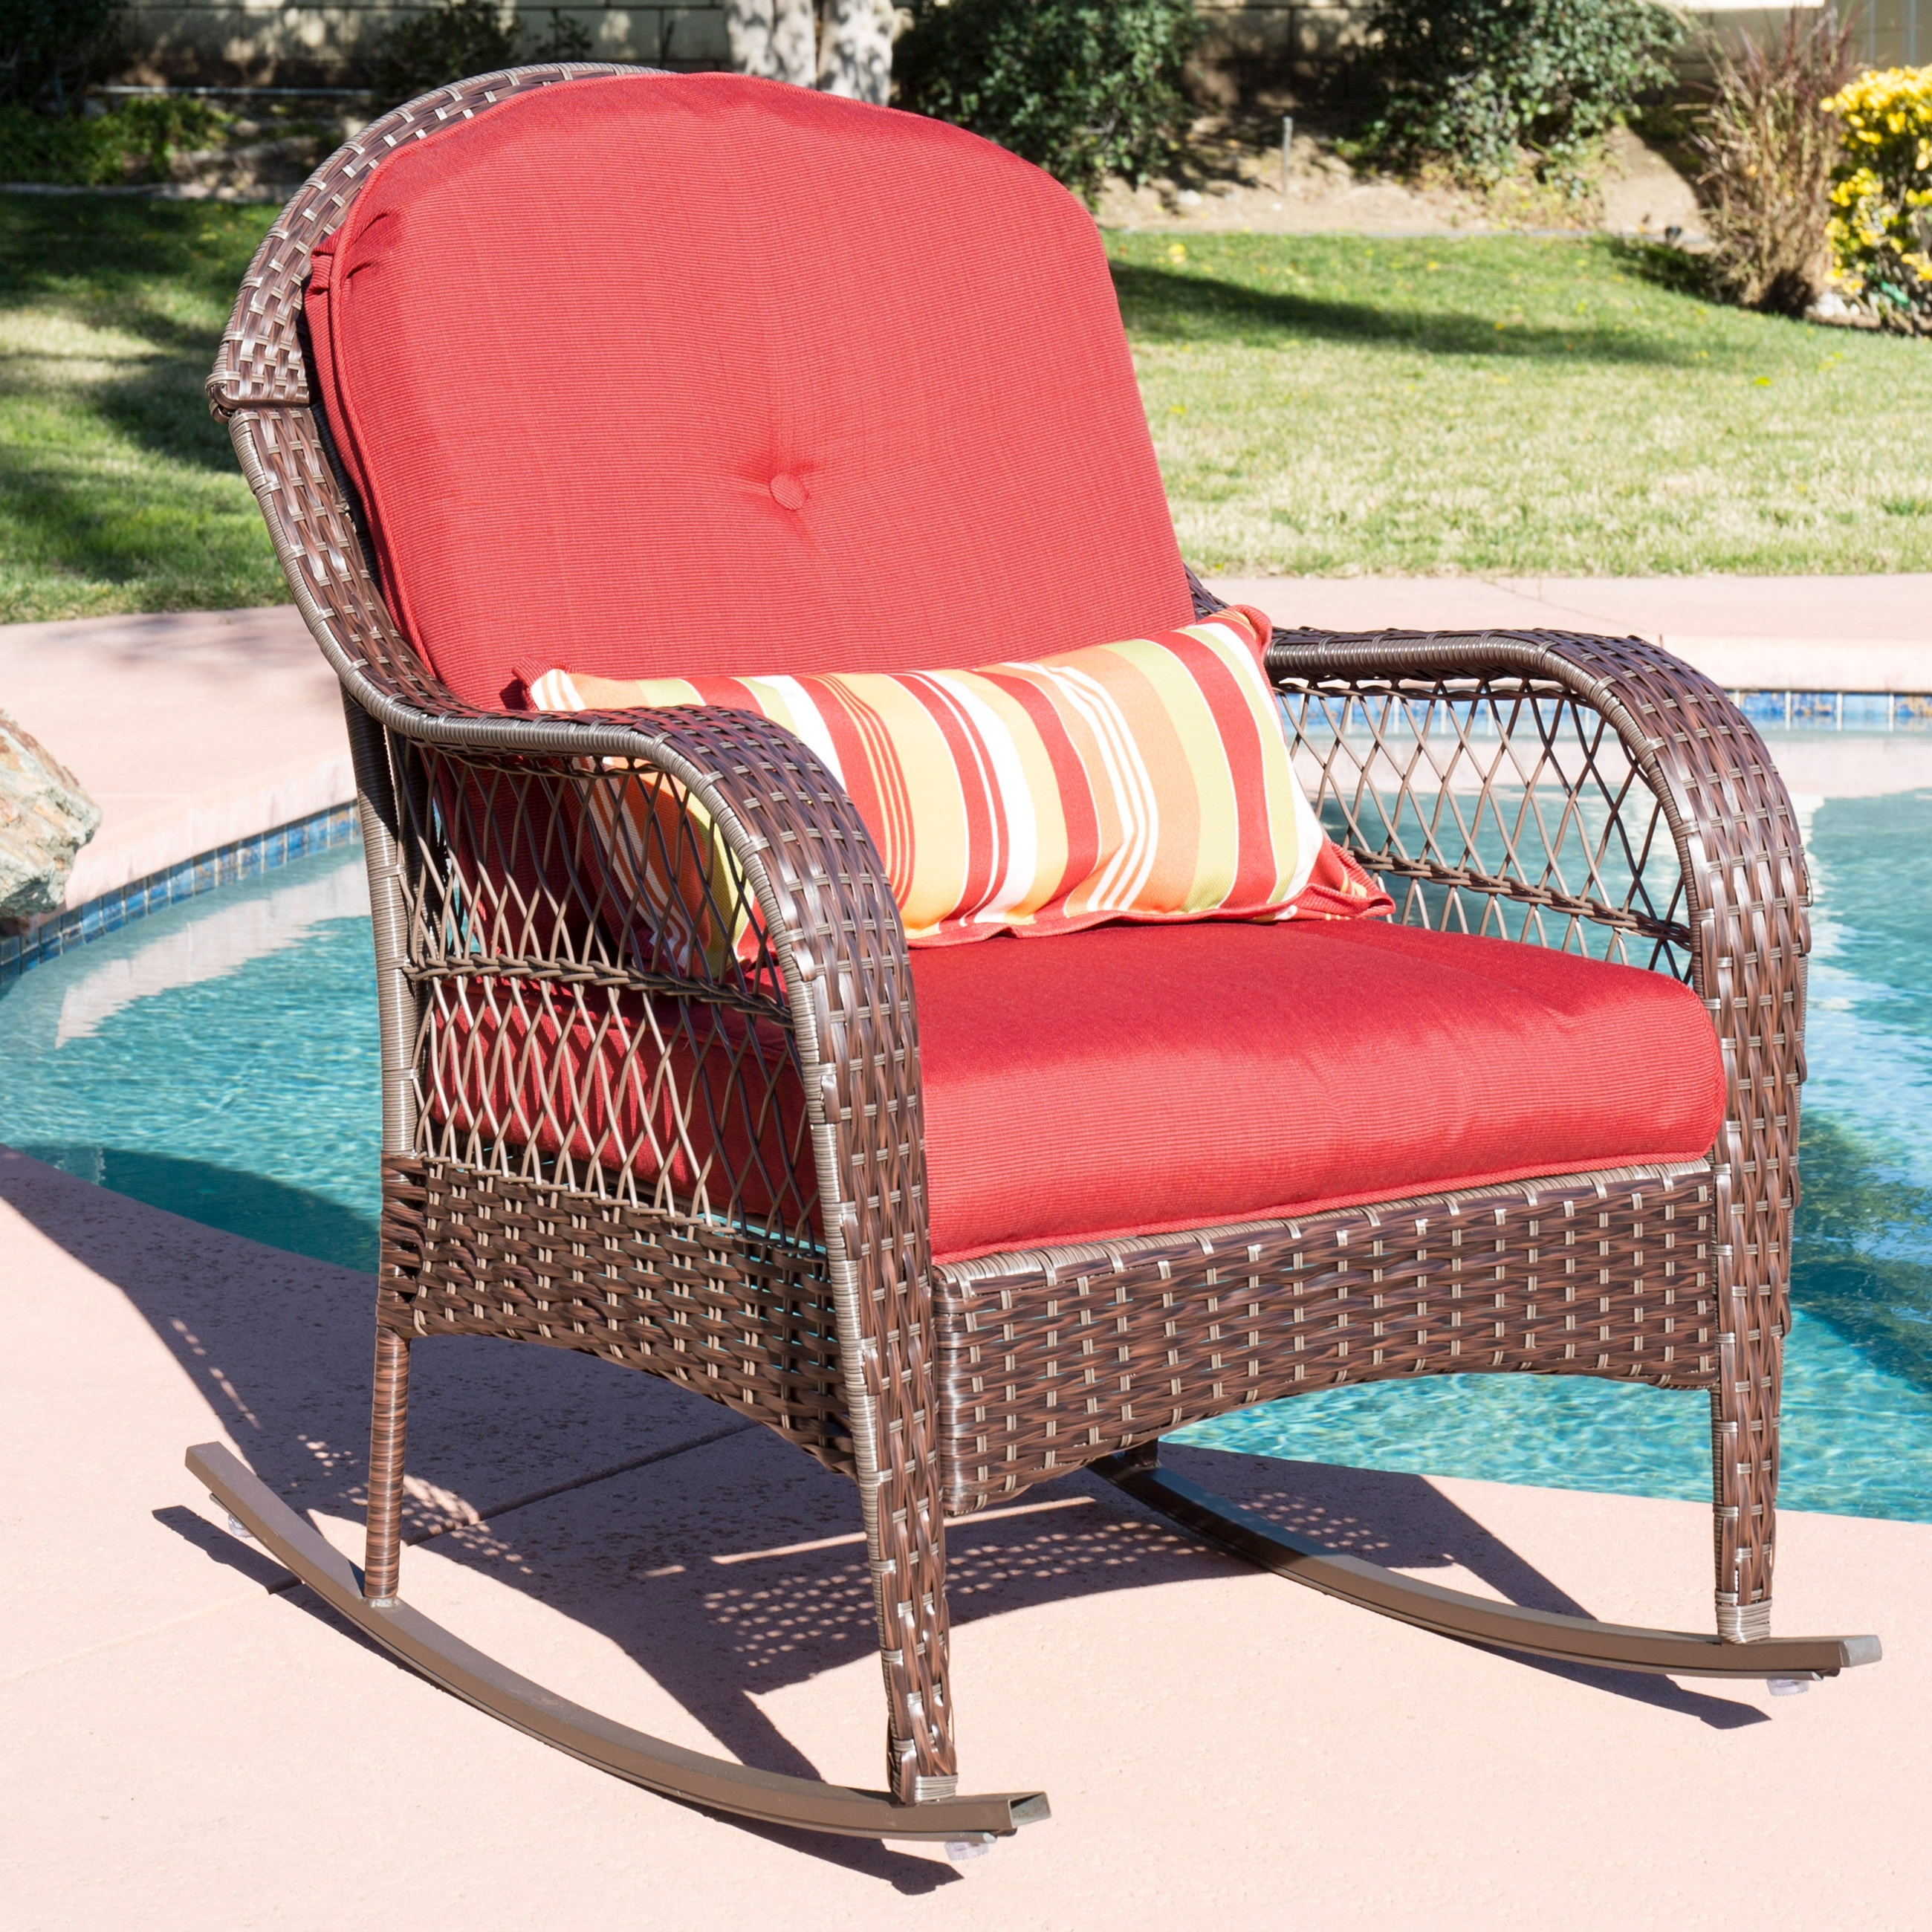 Current Used Patio Rocking Chairs Intended For Best Choice Products Wicker Rocking Chair Patio Porch Deck Furniture (View 8 of 20)